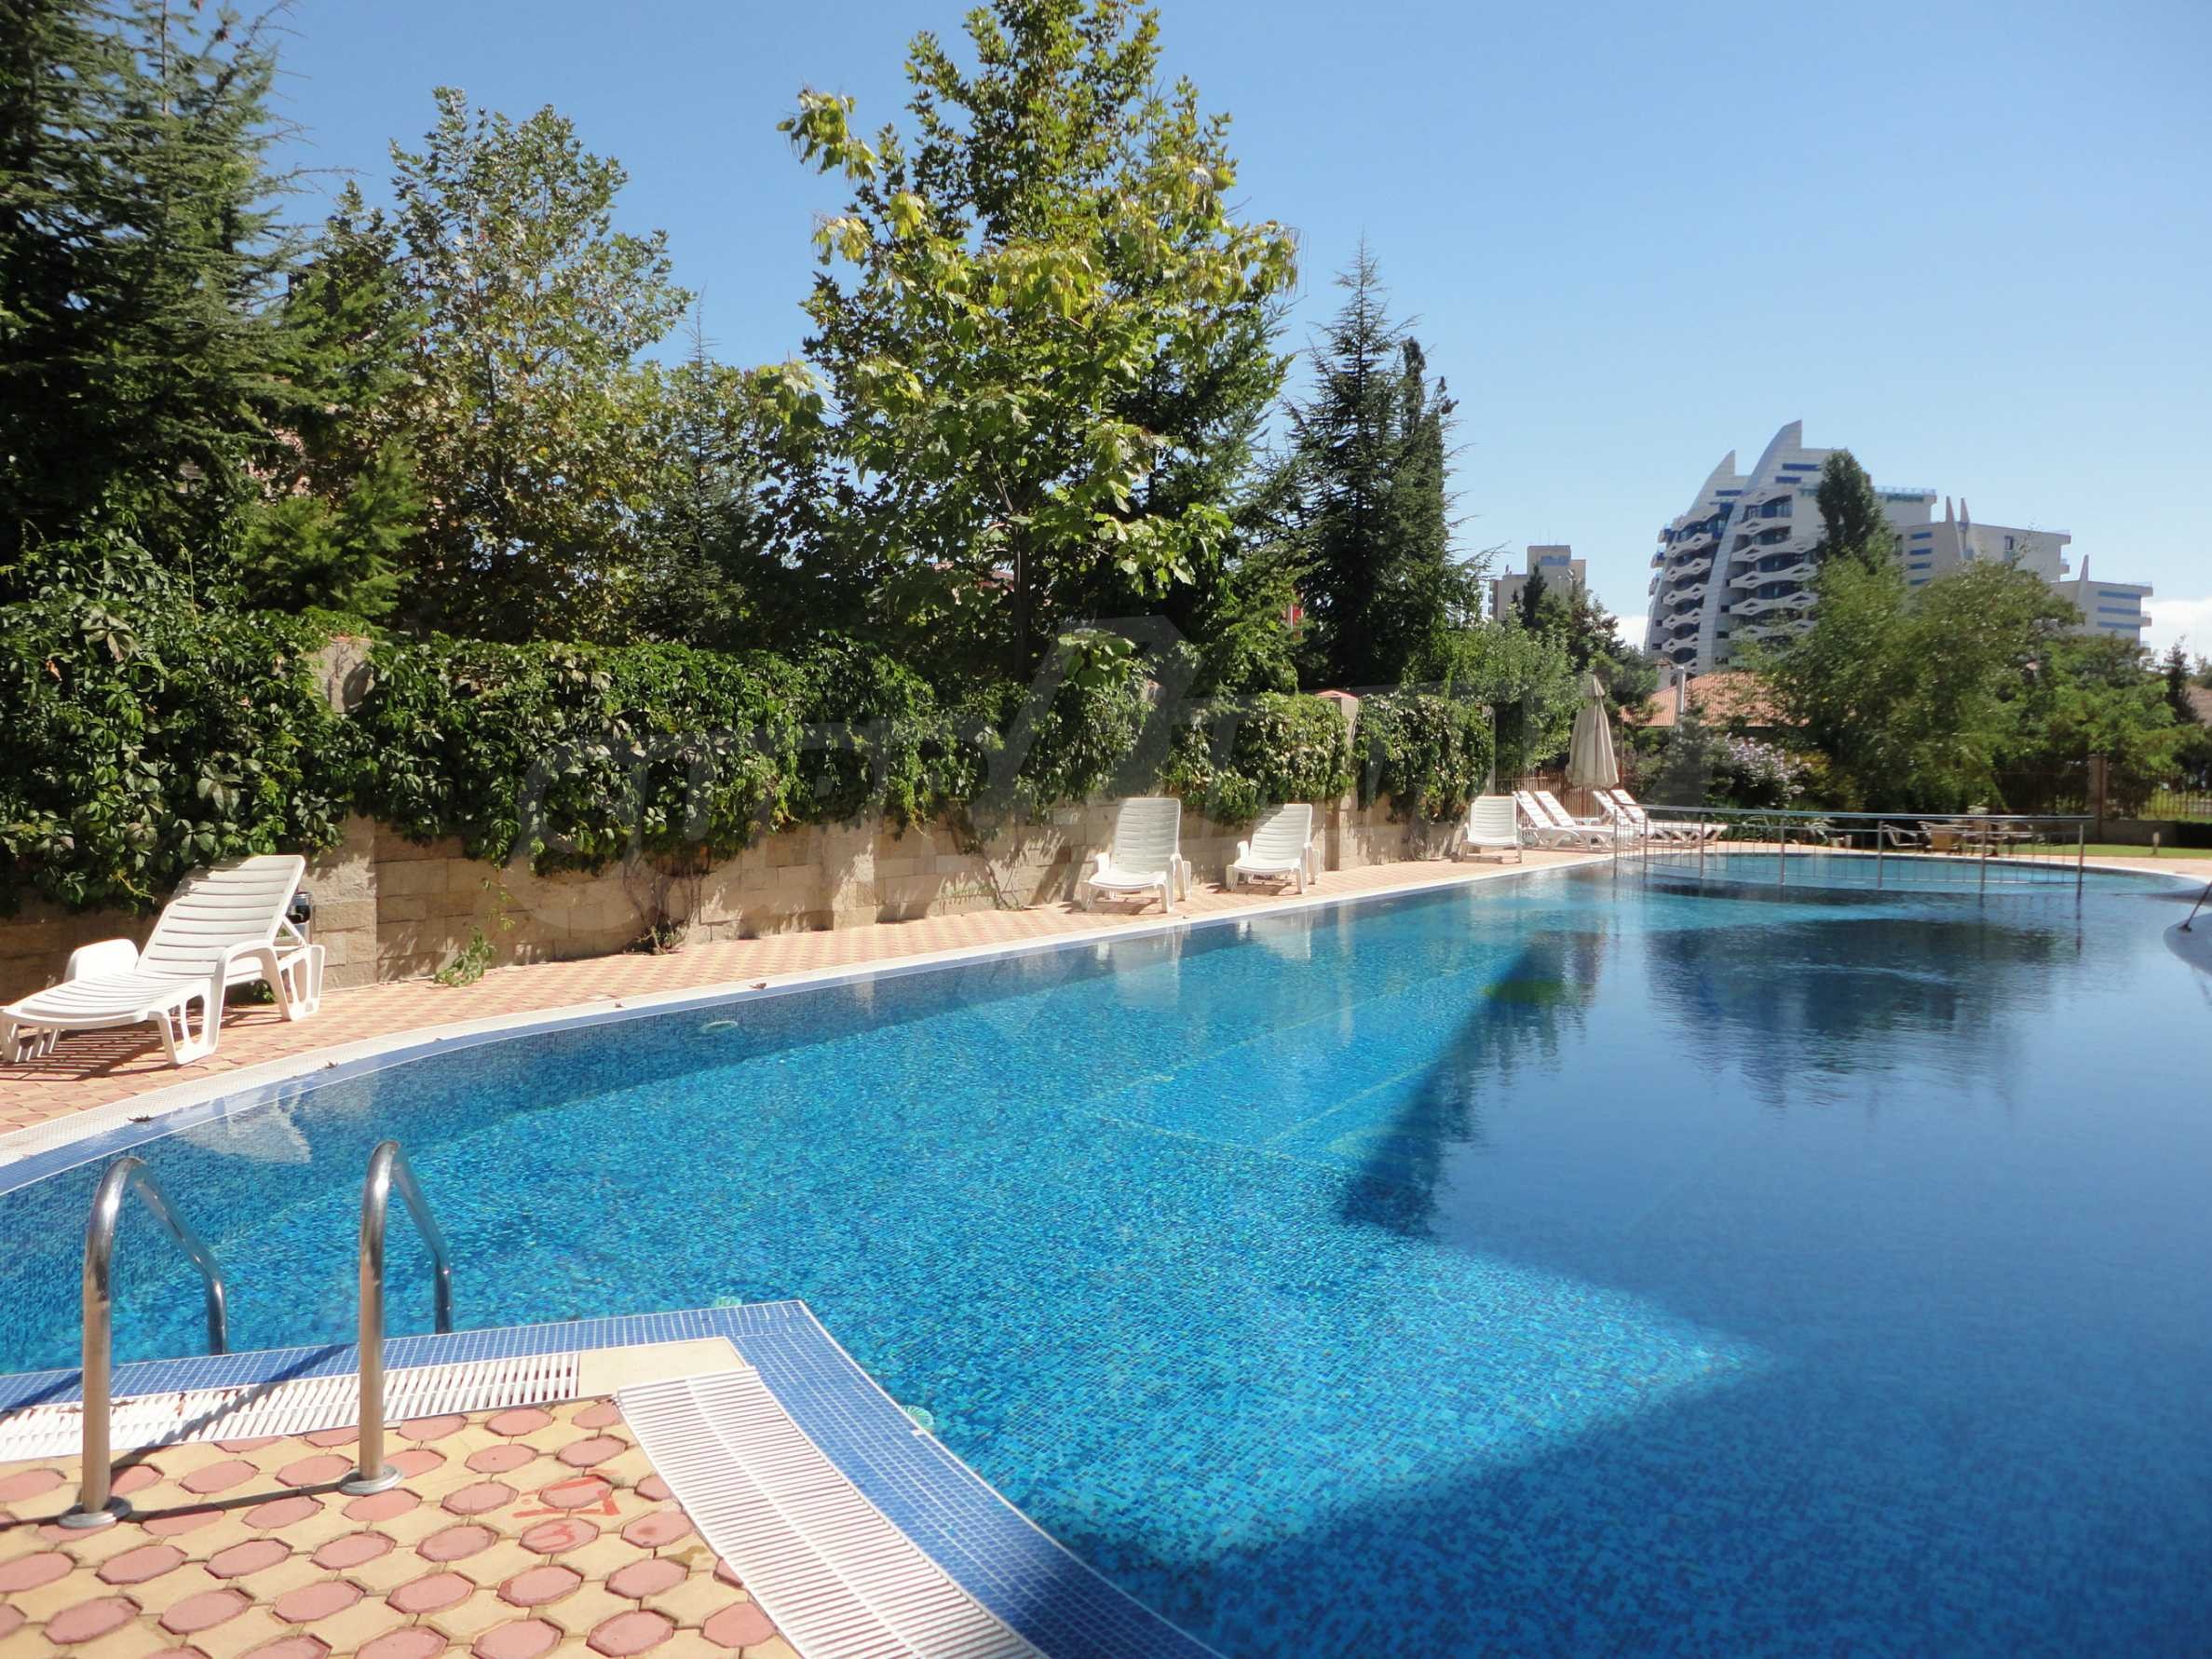 One-bedroom apartment in Golden Dreams complex in Sunny beach 15